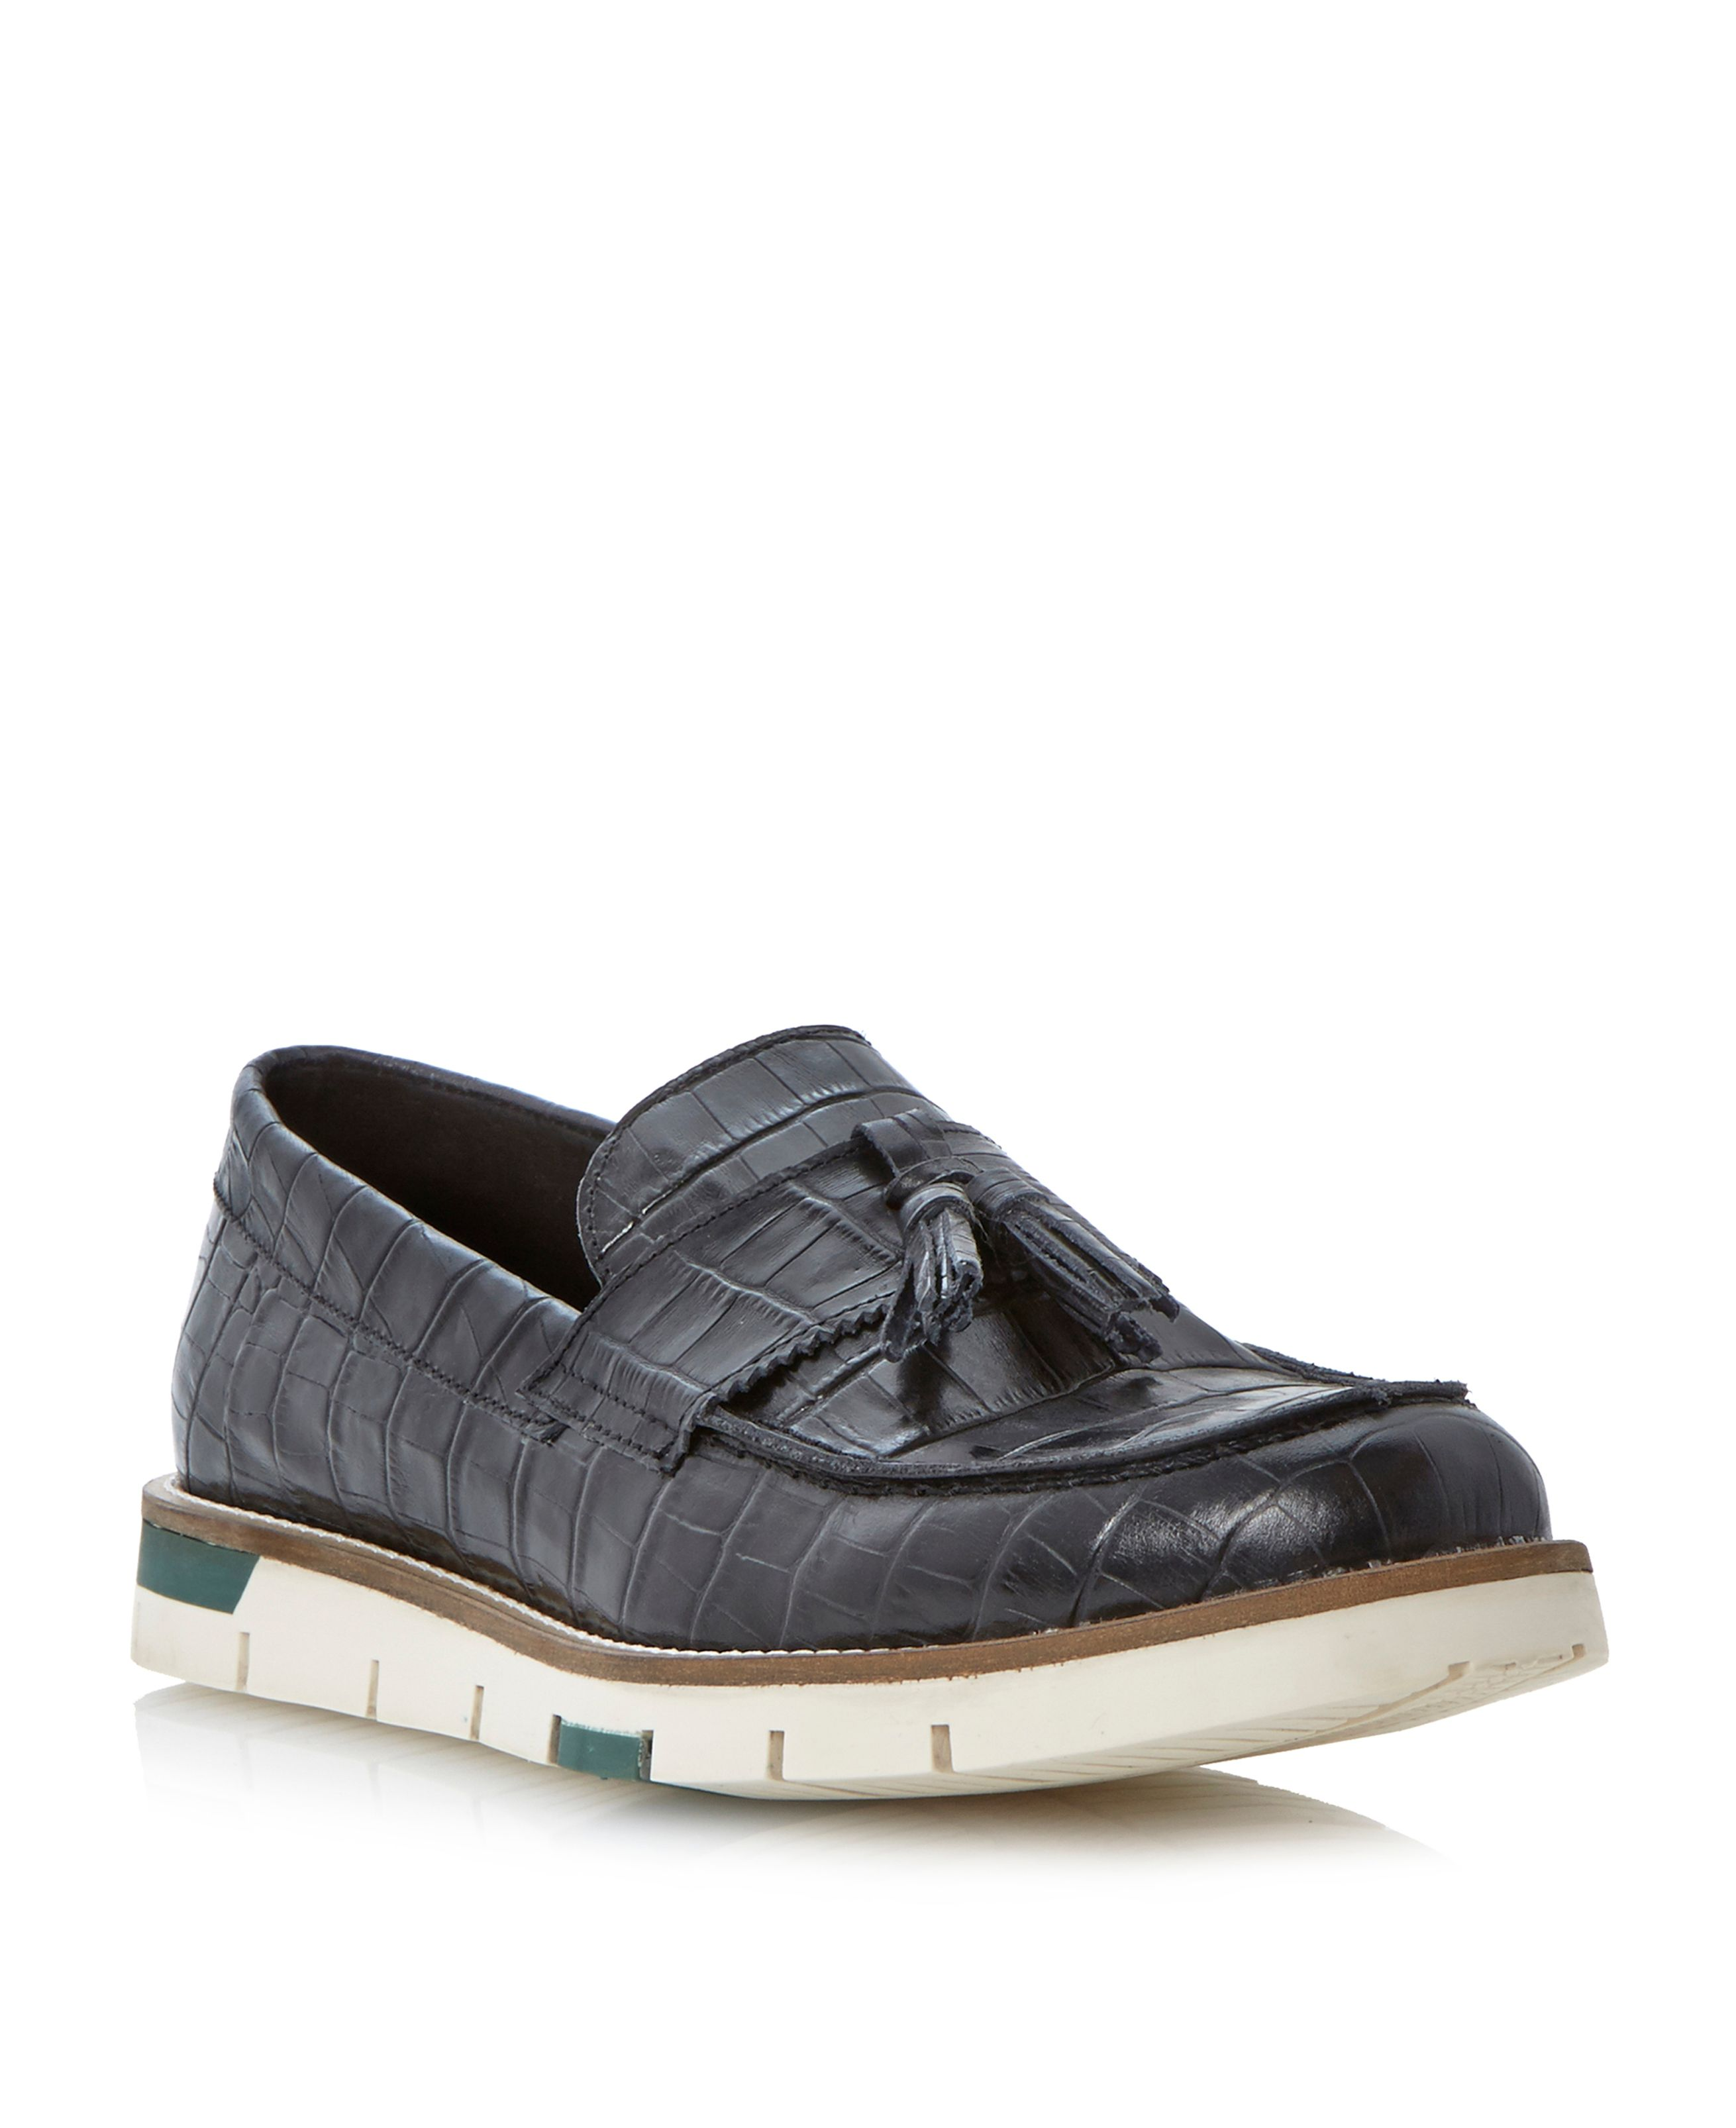 Bumpers na croc embossed tassle loafers